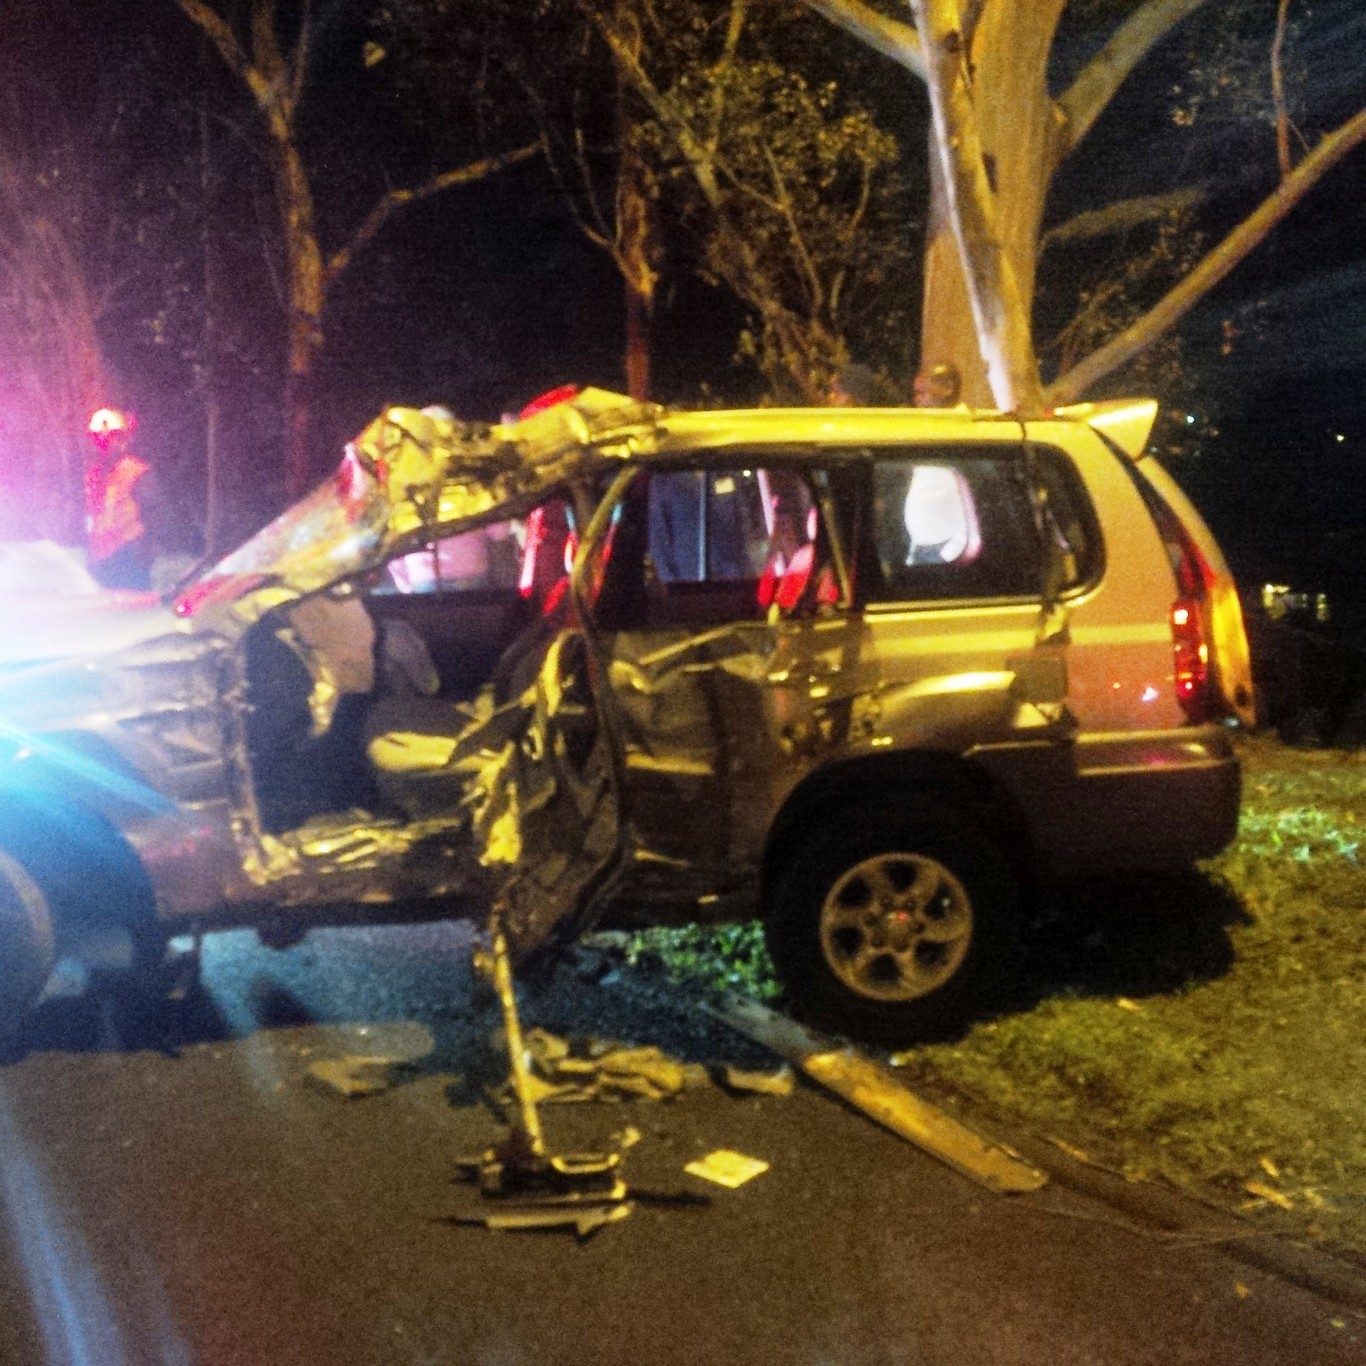 Three injured as vehicle collides with tree in Durban